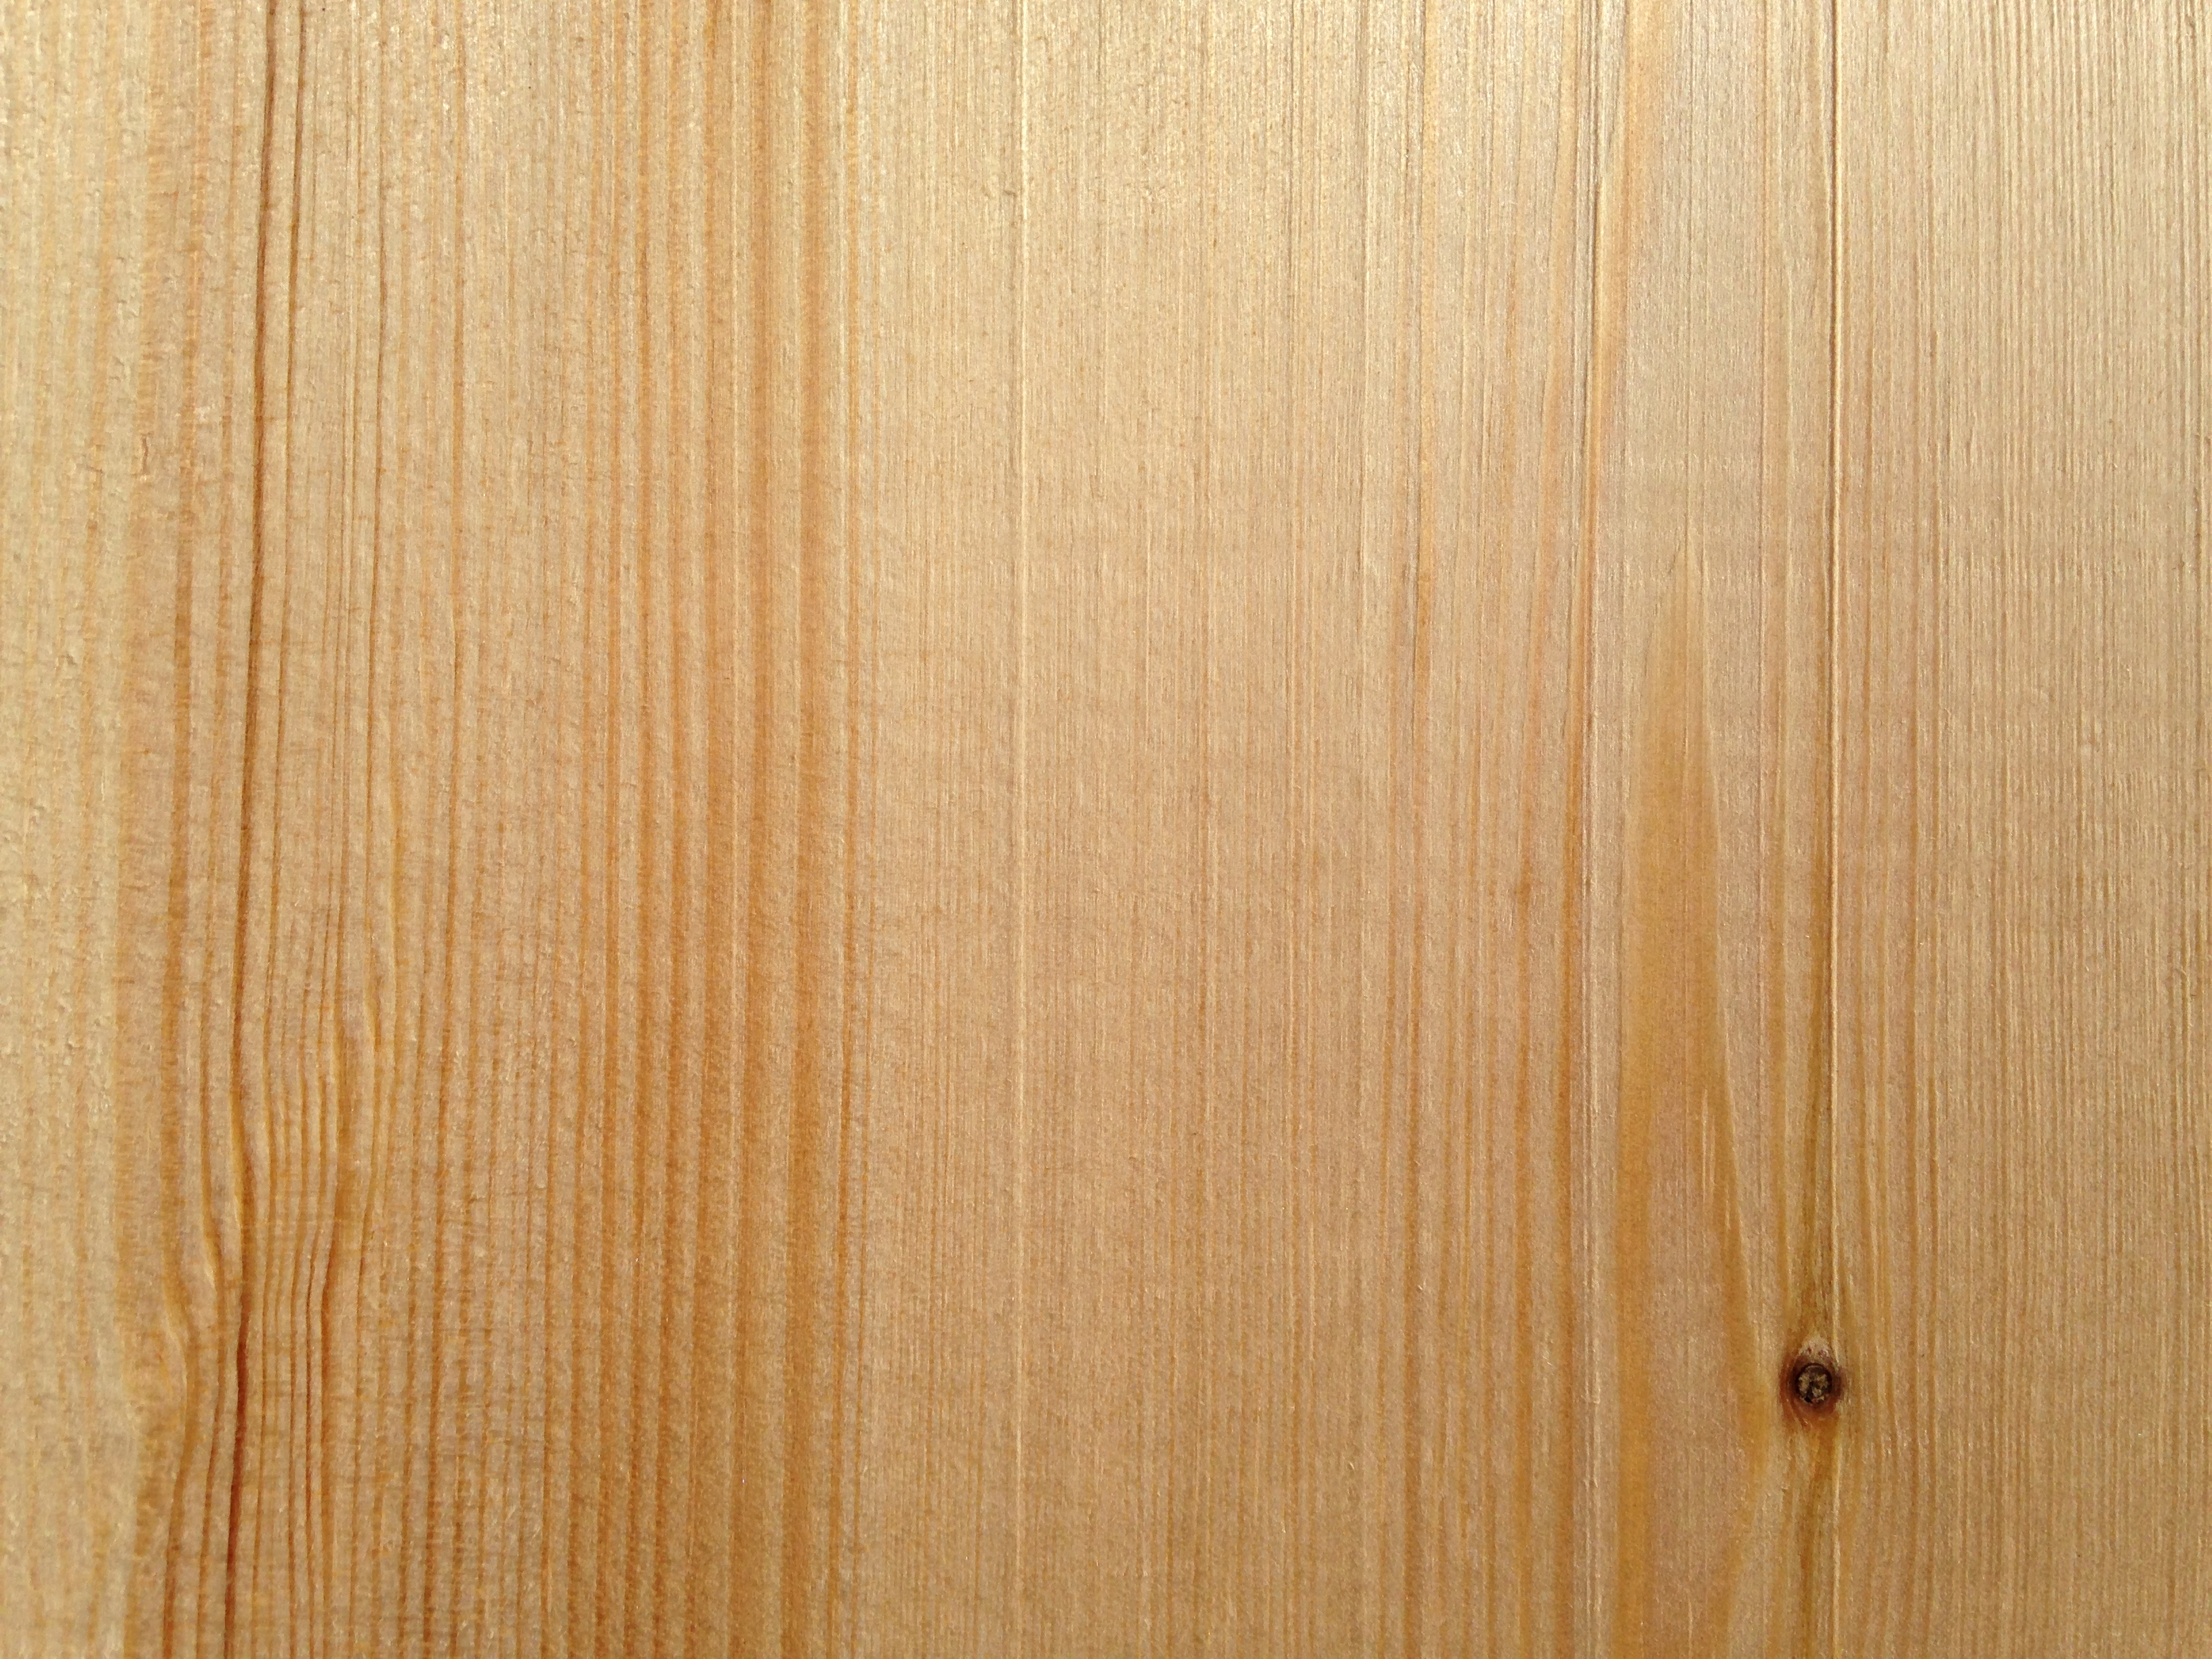 yellow poplar wood